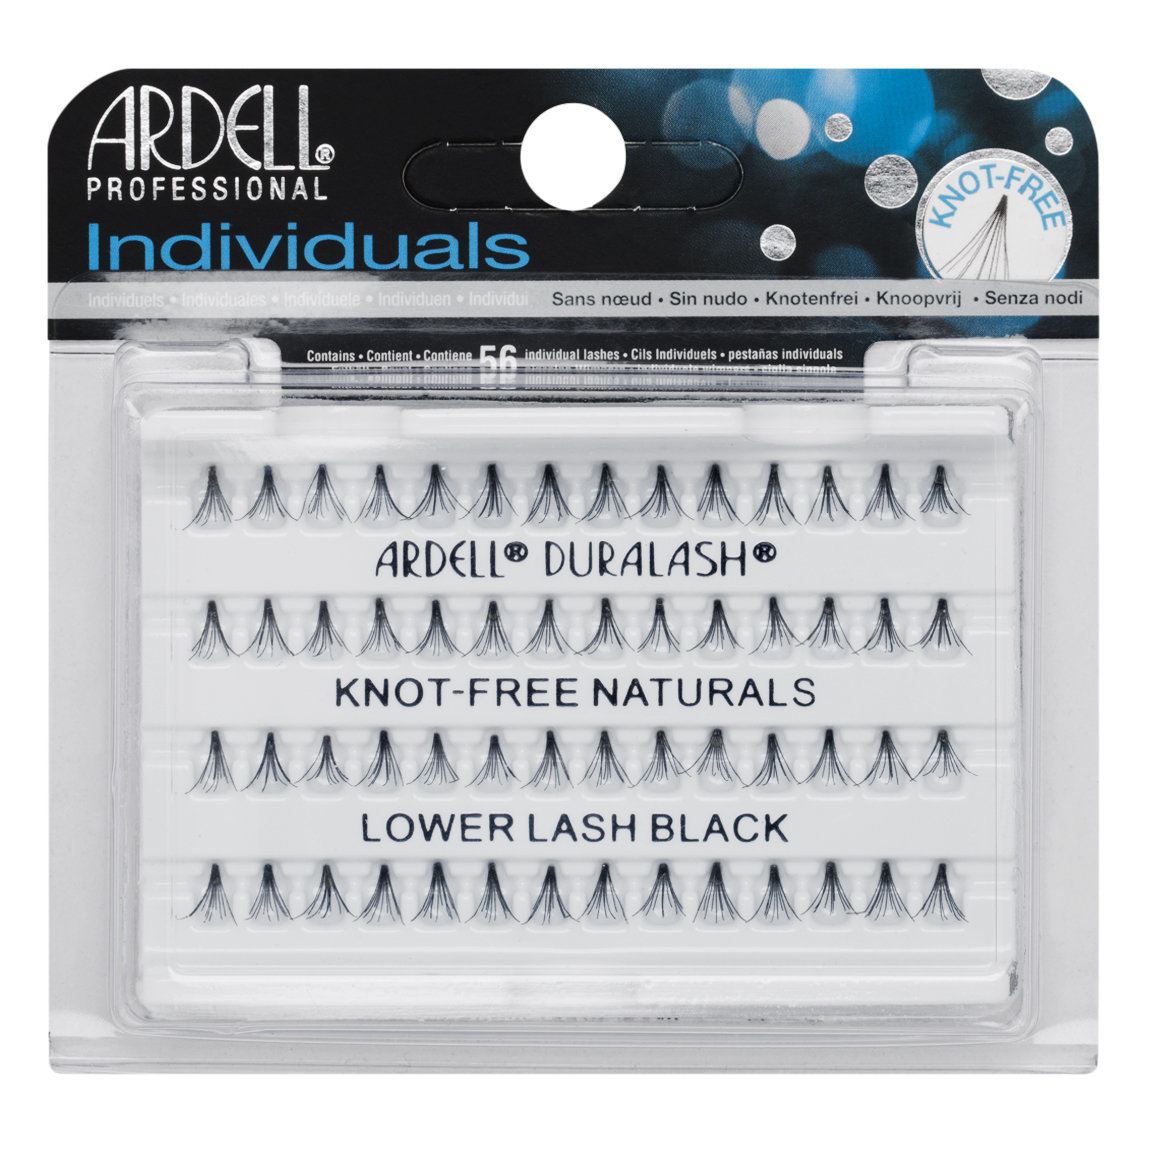 Ardell Professional Knot Free Naturals Lower Lash Individuals